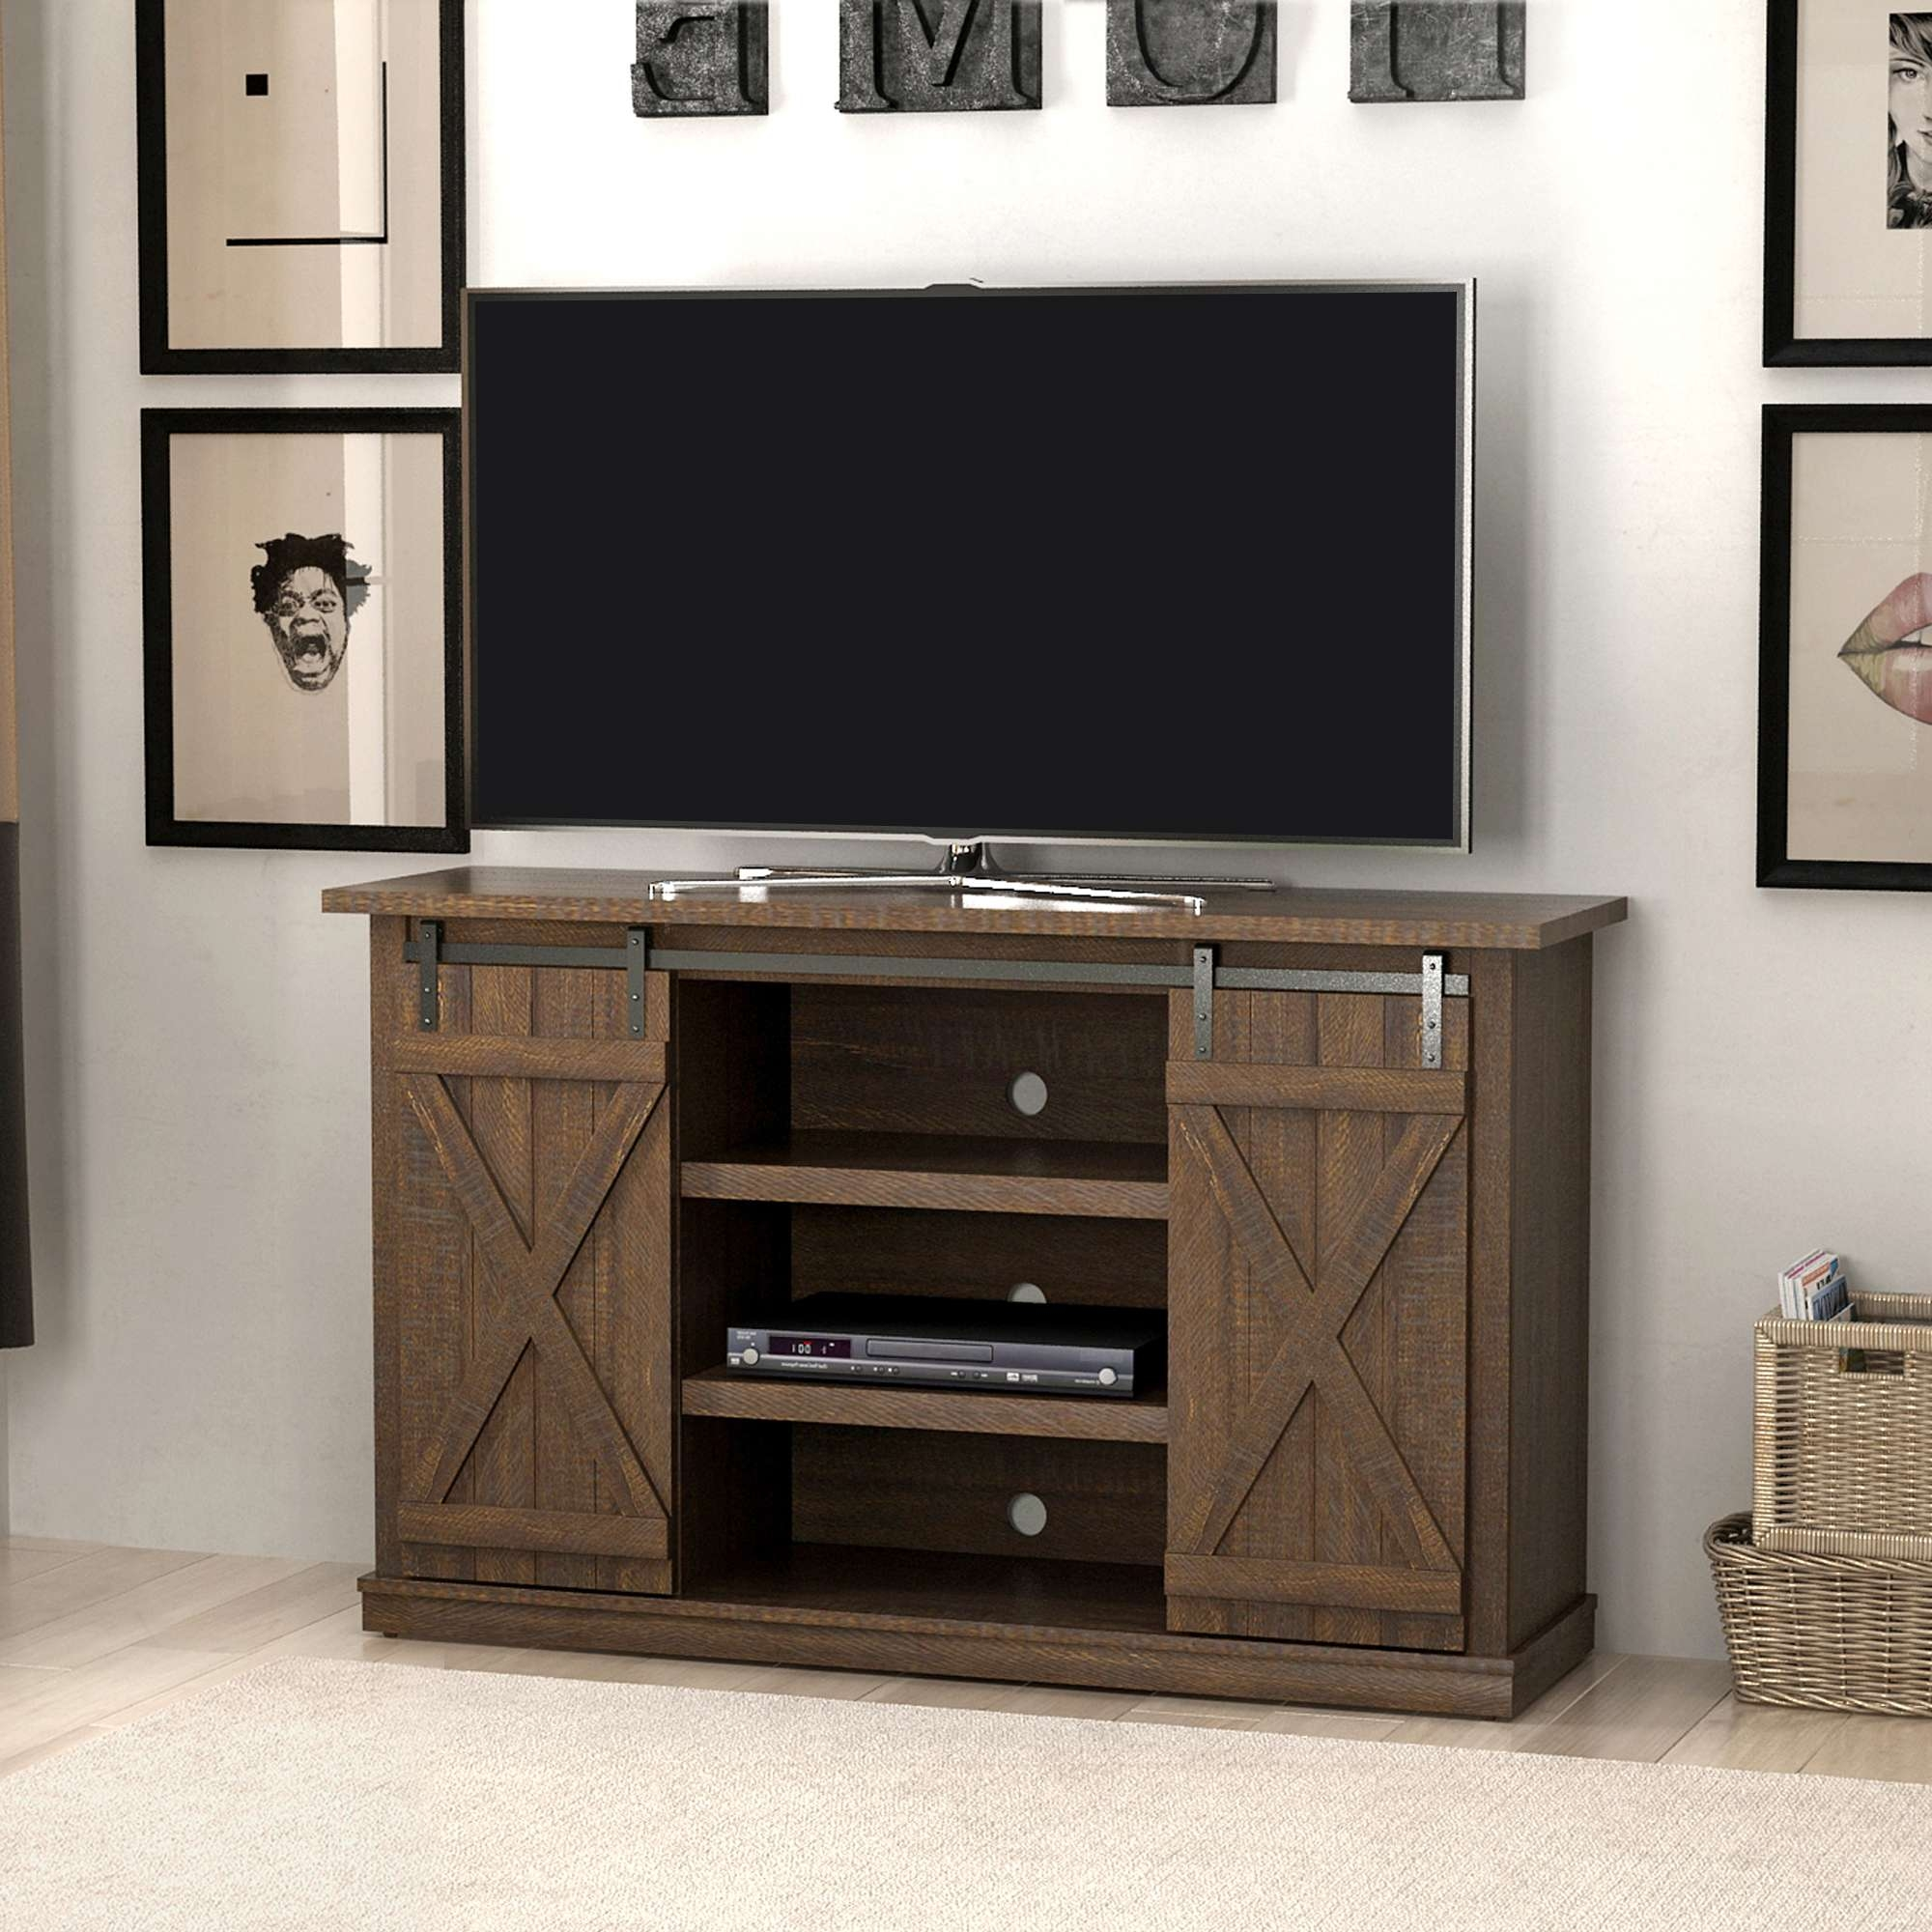 Tv Stands – Walmart Throughout Modern Tv Stands For 60 Inch Tvs (View 14 of 15)